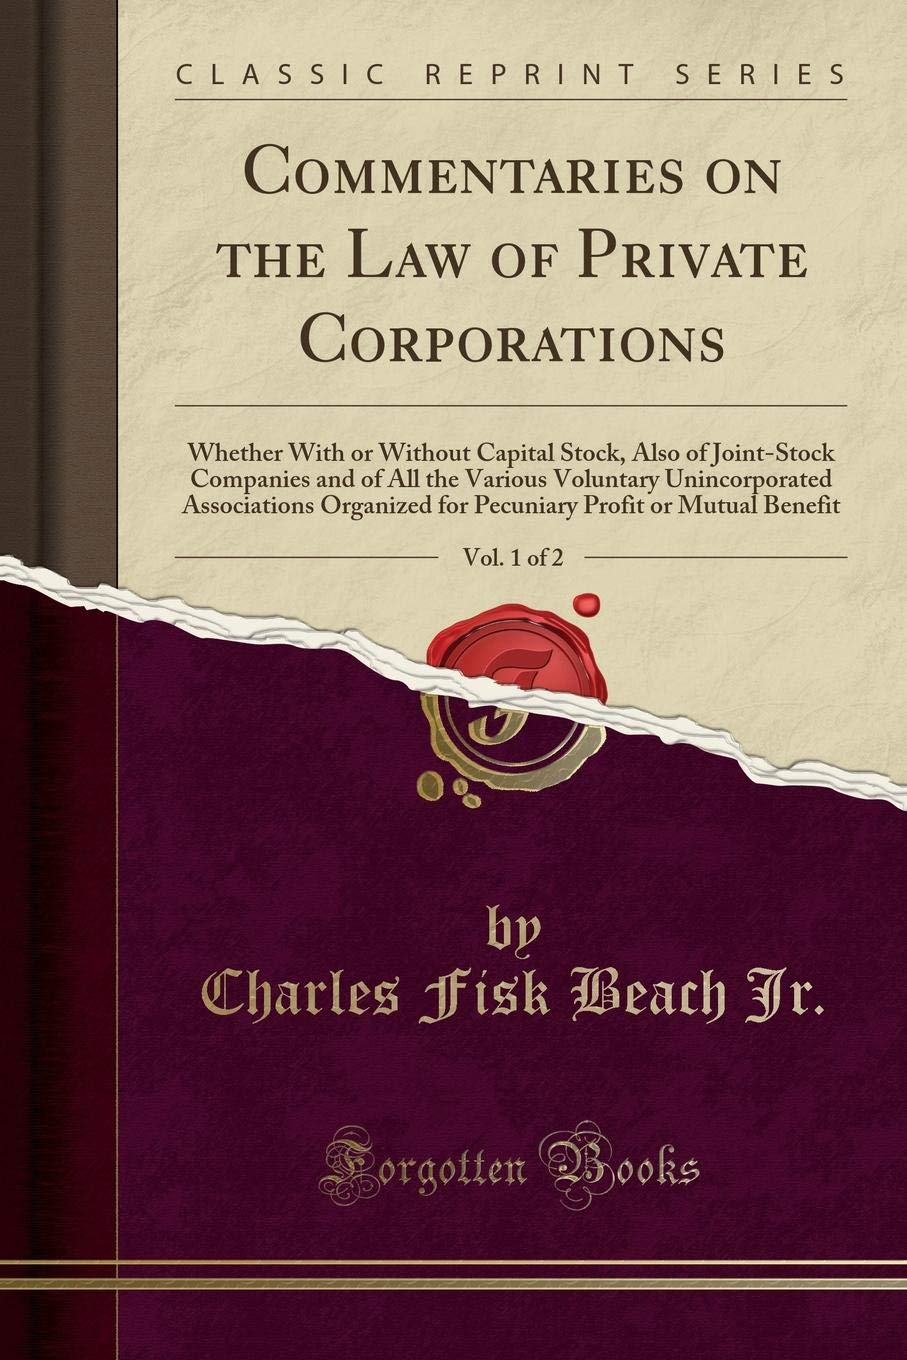 Download Commentaries on the Law of Private Corporations, Vol. 1 of 2: Whether With or Without Capital Stock, Also of Joint-Stock Companies and of All the ... for Pecuniary Profit or Mutual Benefit pdf epub